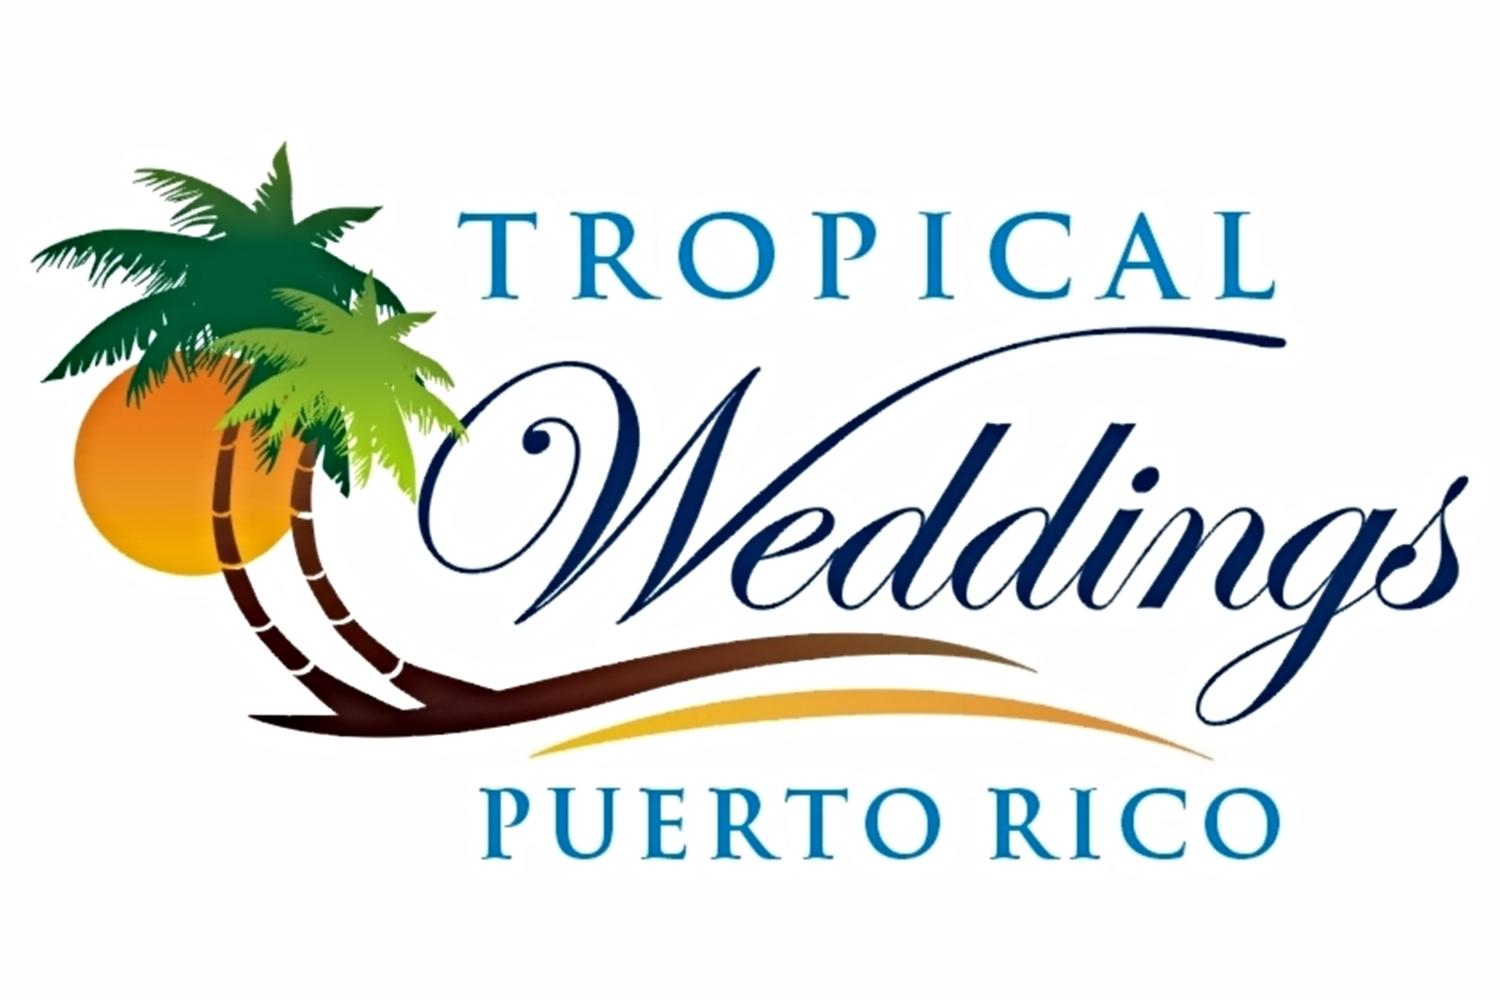 Tropical Weddings Puerto Rico